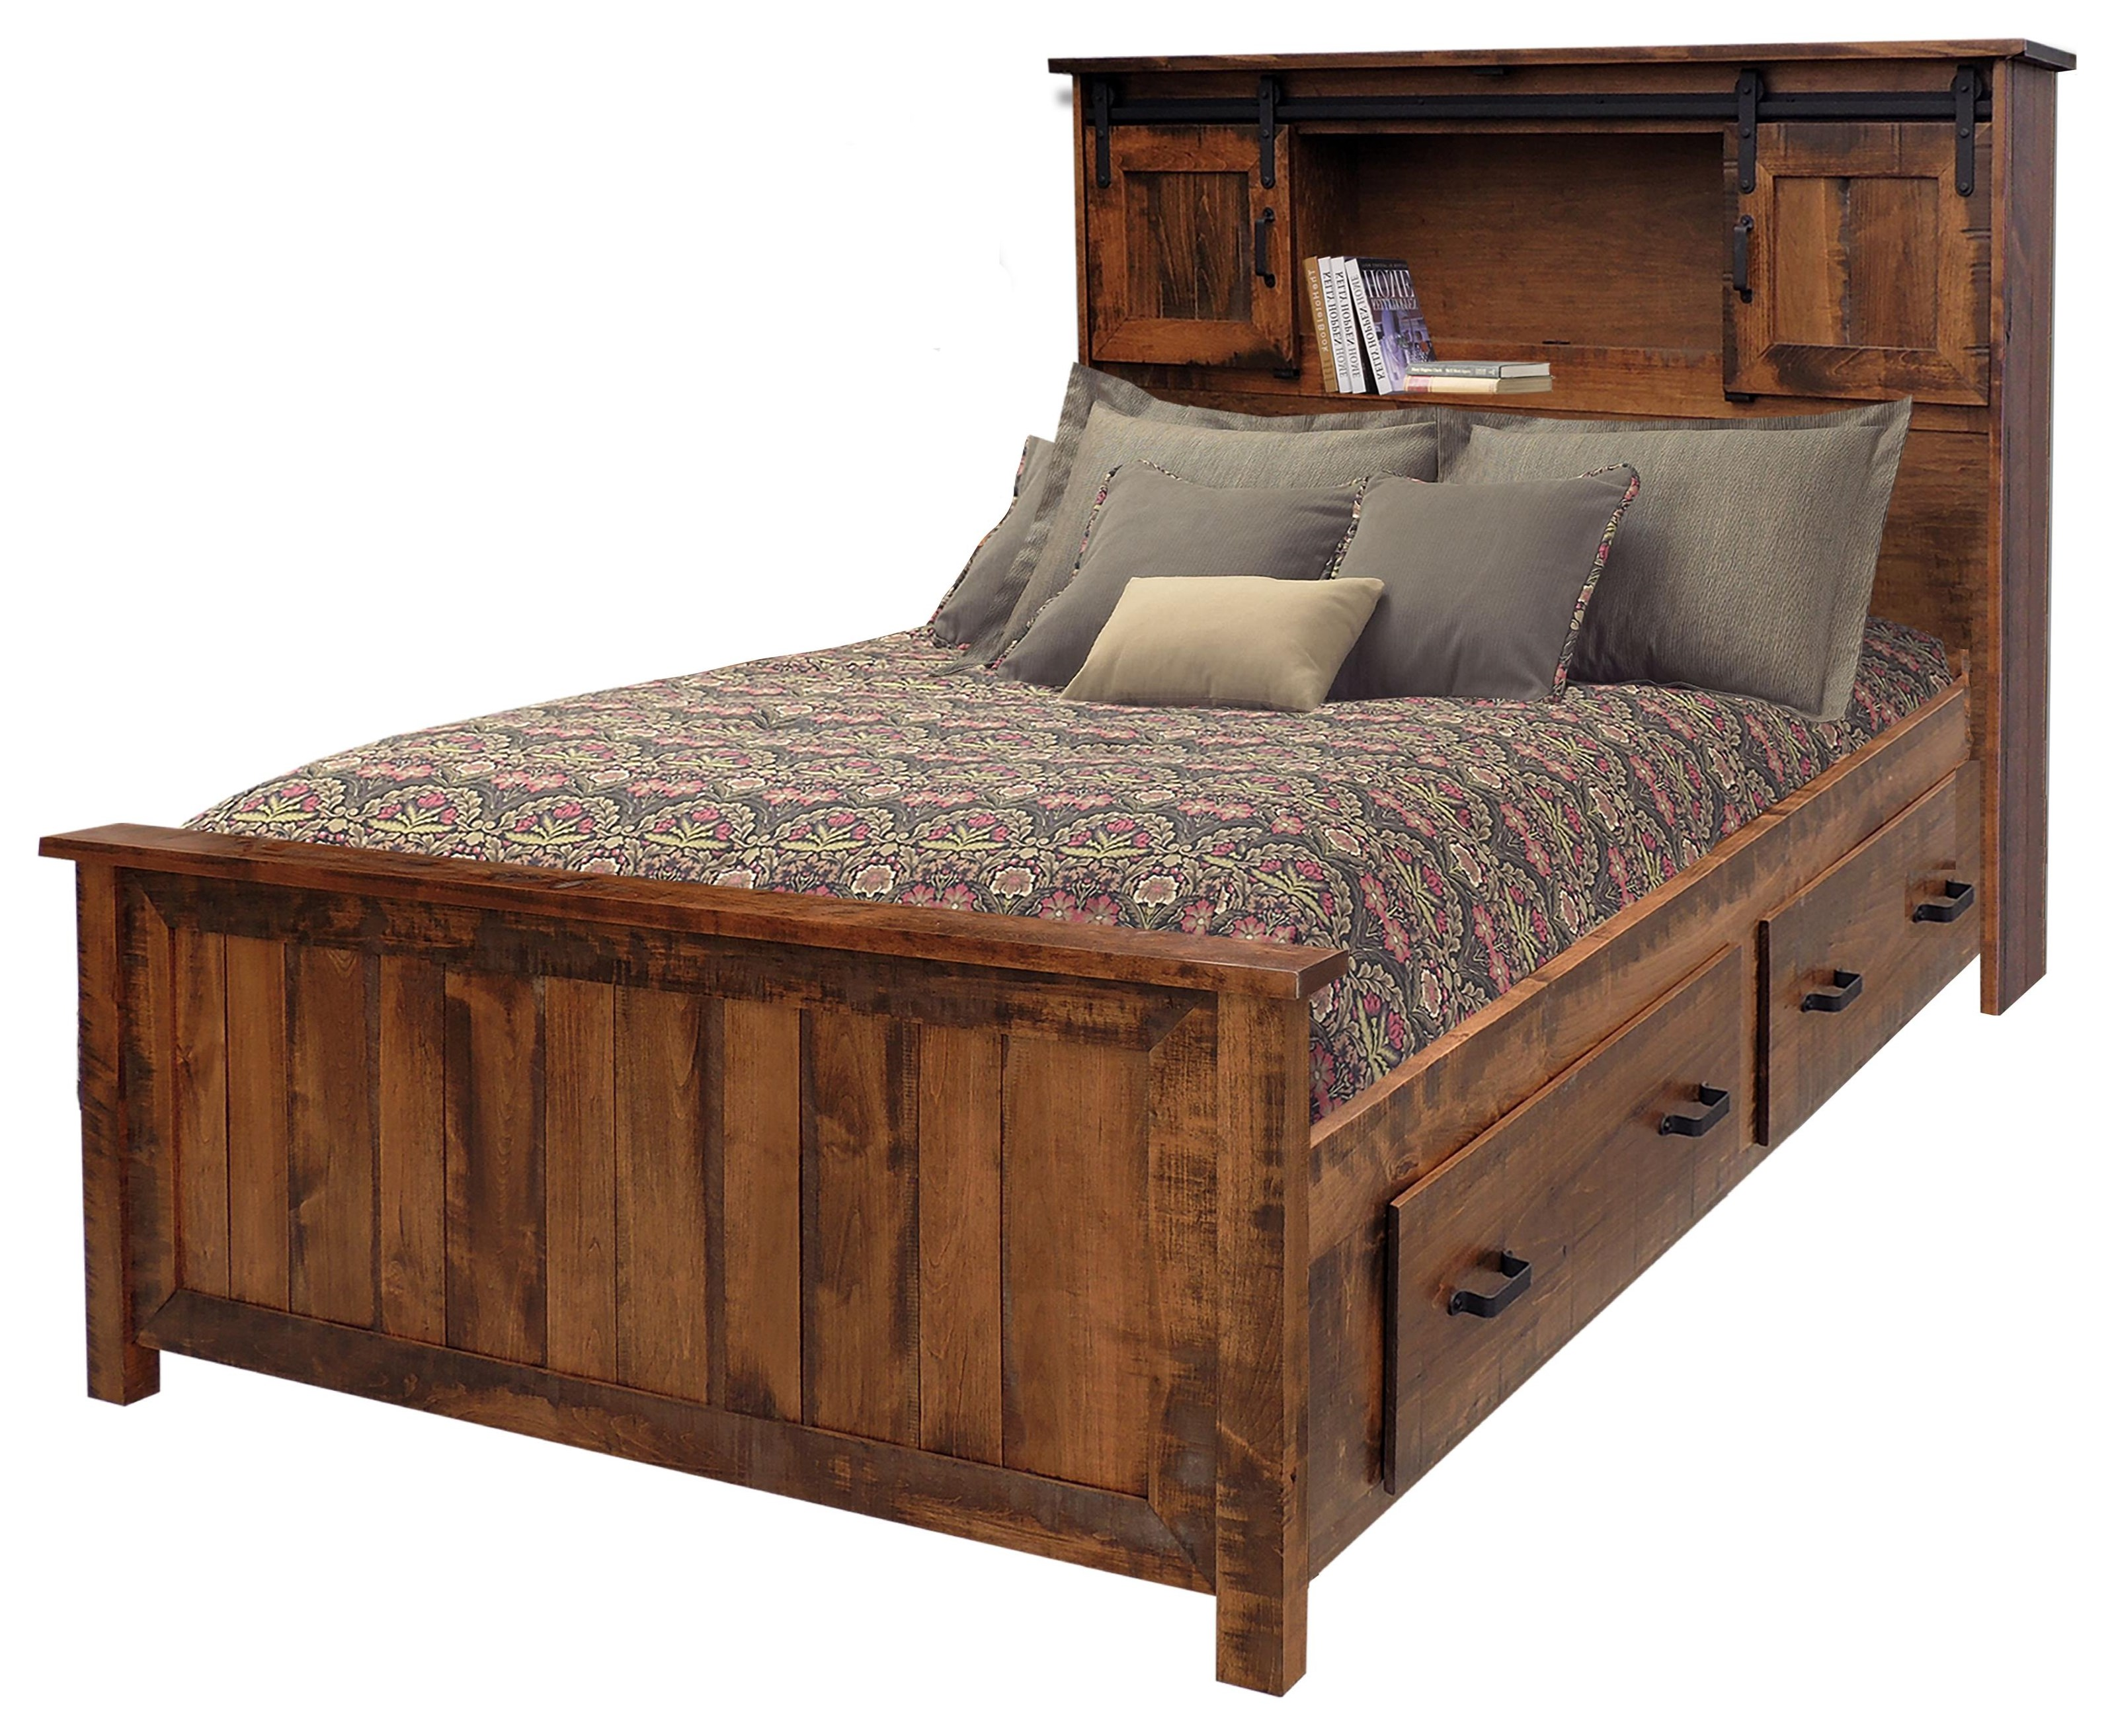 Picture of: Wayside Custom Furniture Bear Creek Queen Bookcase Storage Bed Wayside Furniture Bookcase Beds